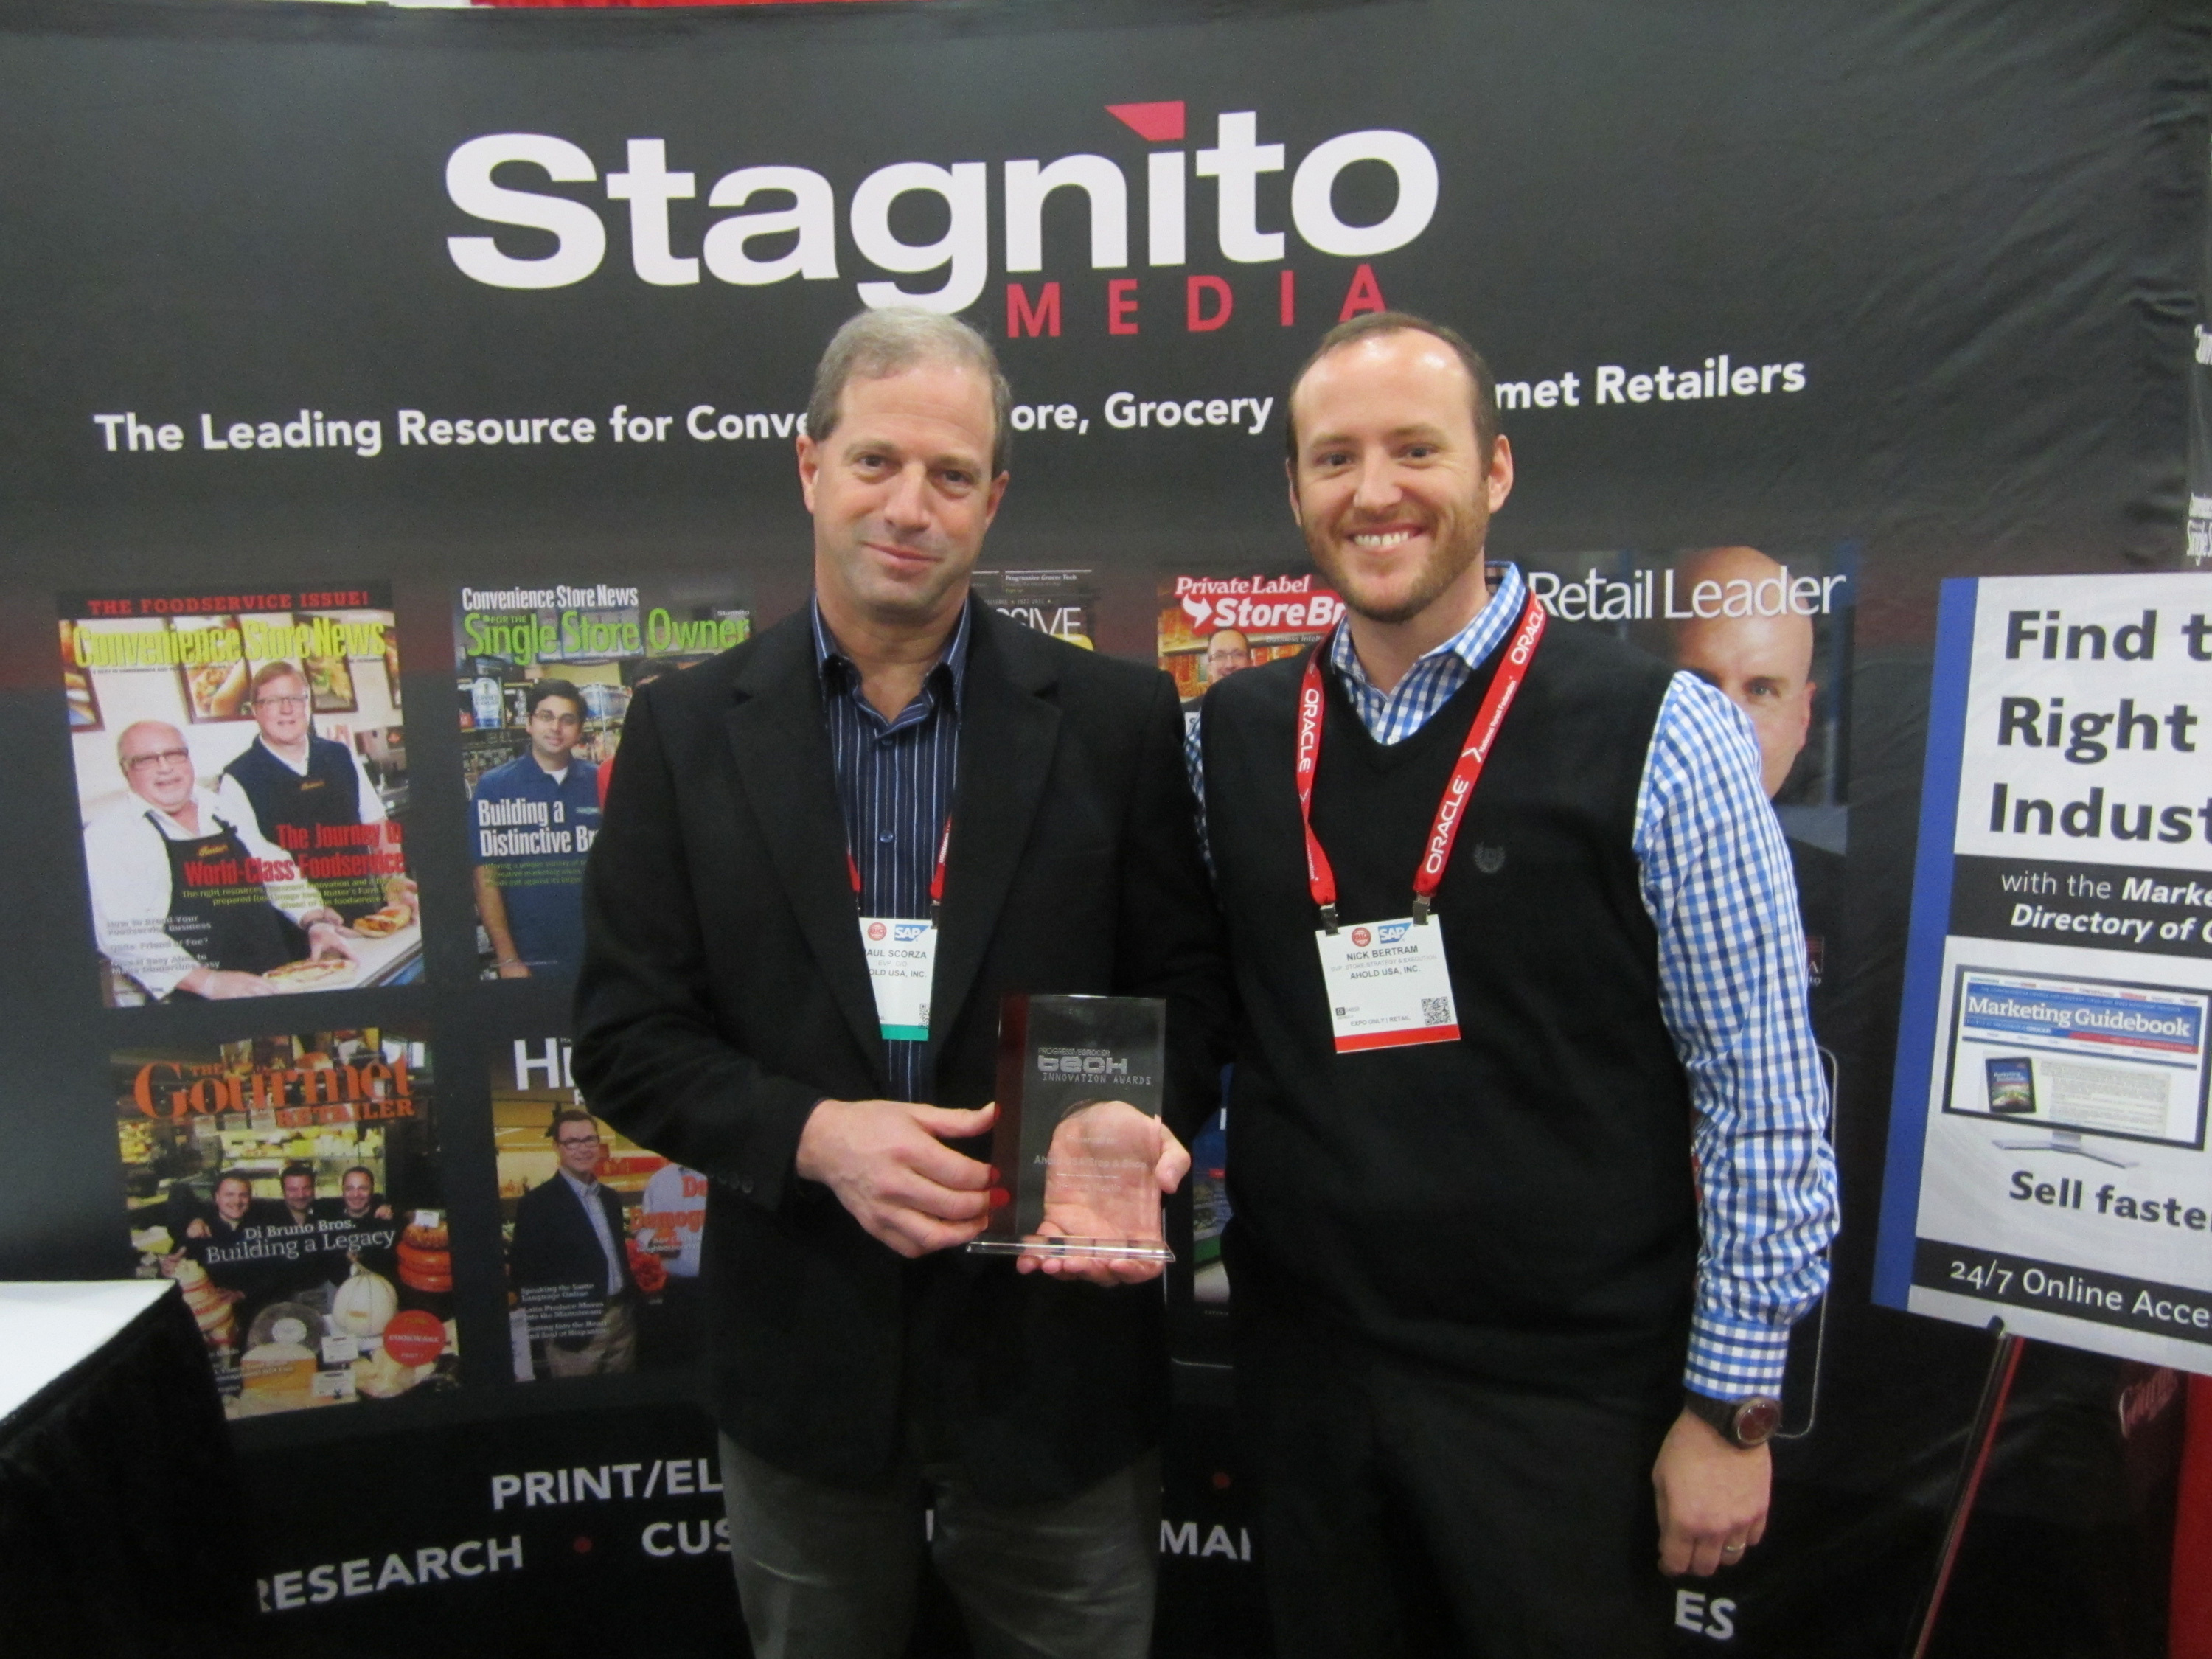 Pictured from Left to Right: Paul Scorza, Ahold USA CIO, and Nick Betram, Ahold USA SVP, Store Strategy and Execution. (Photo: Business Wire)